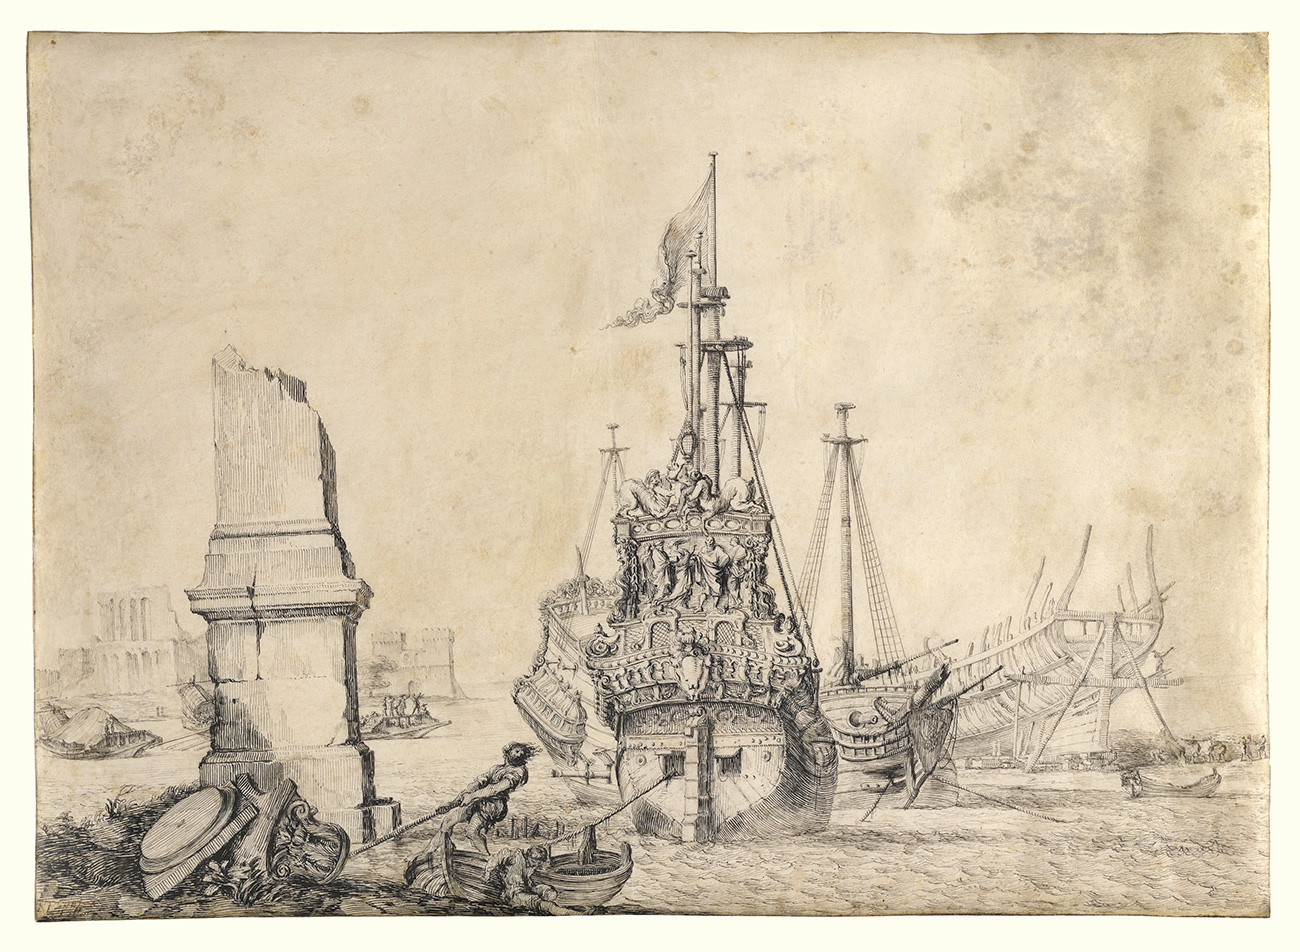 A drawing showing a ship in the background and a column in ruins in the foreground